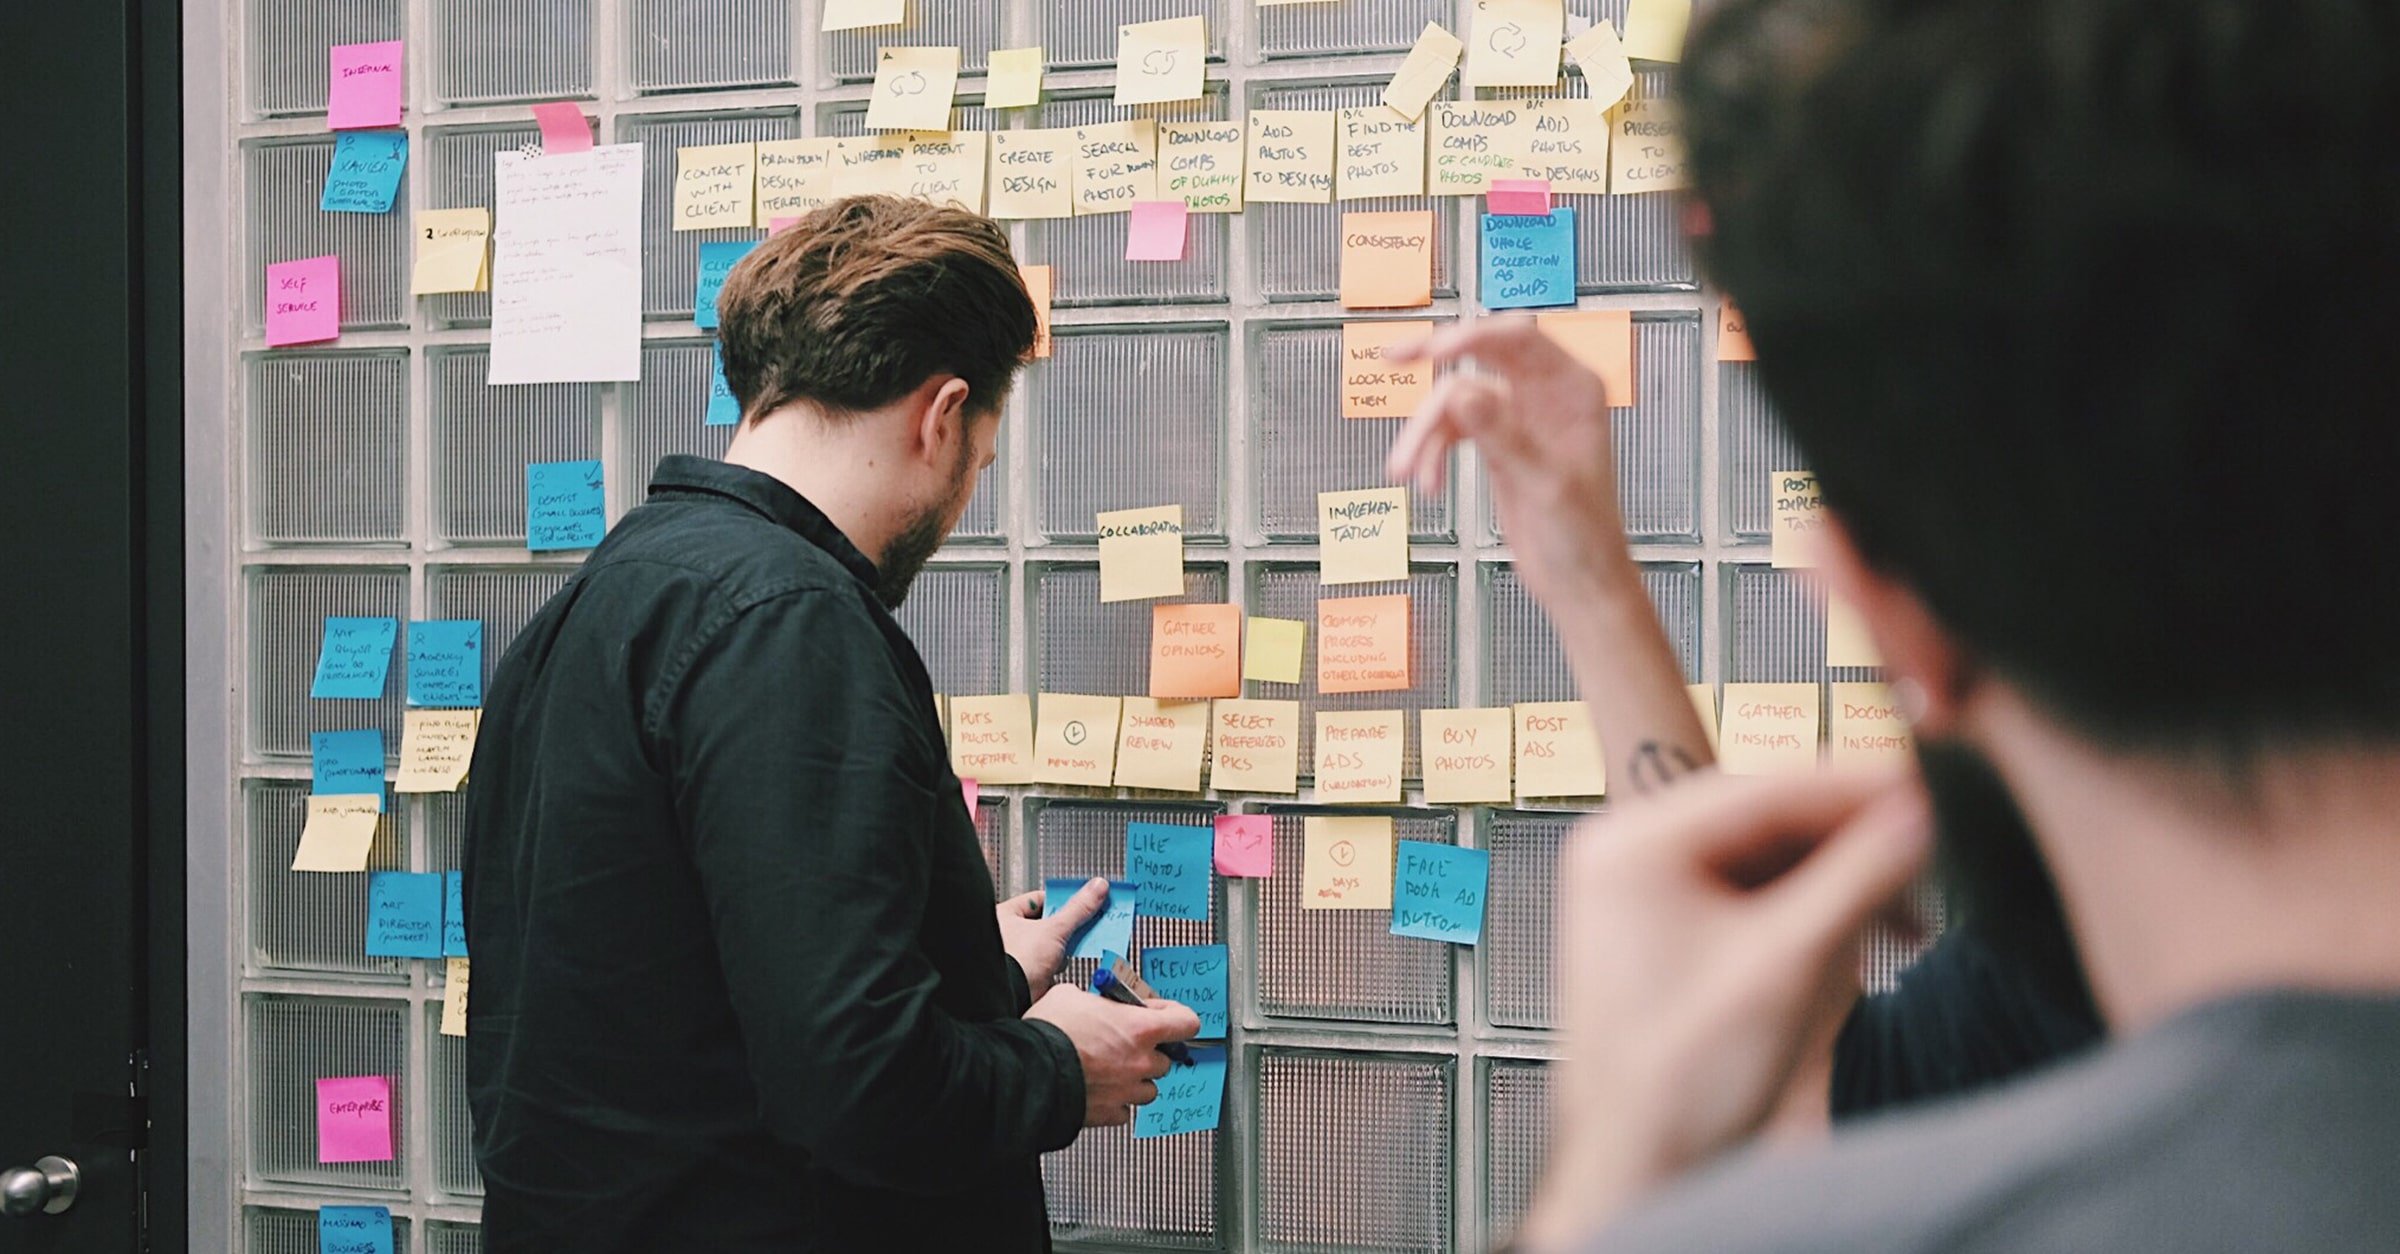 Agile Release Planning in Software Development